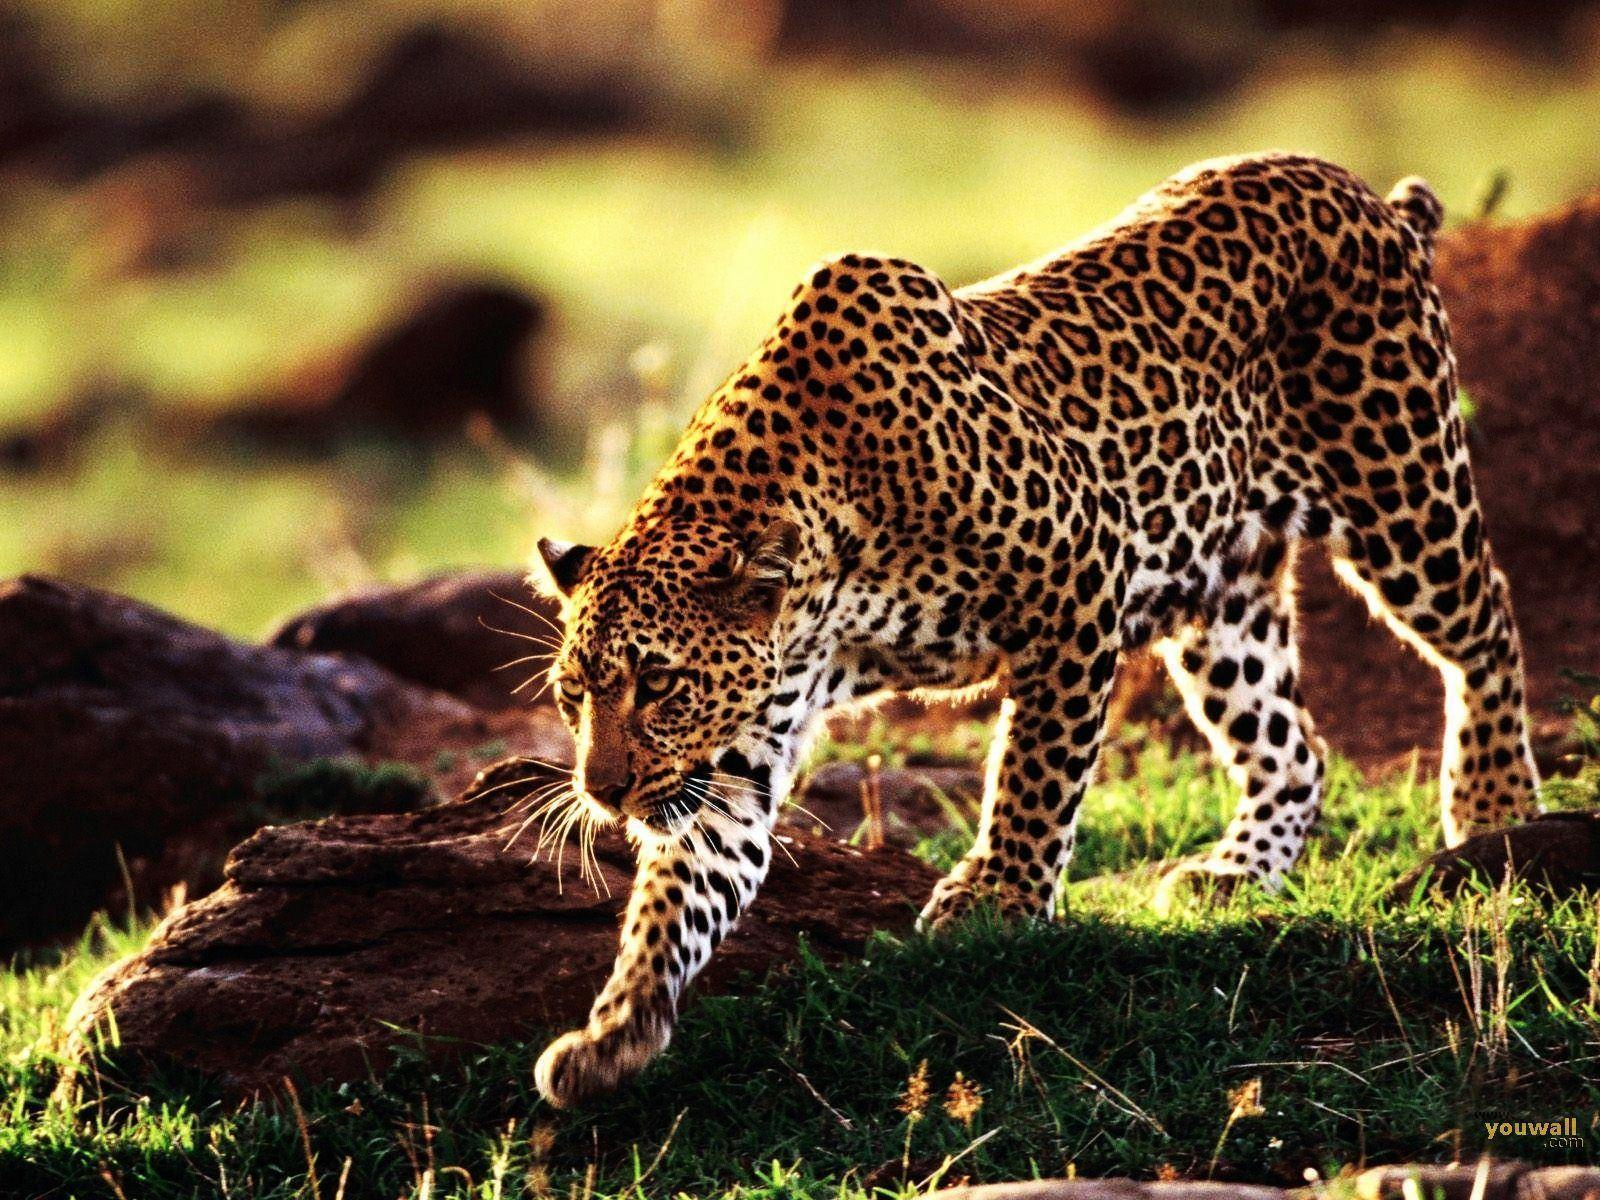 Wallpapers For > Iphone 5 Wallpaper Cheetah